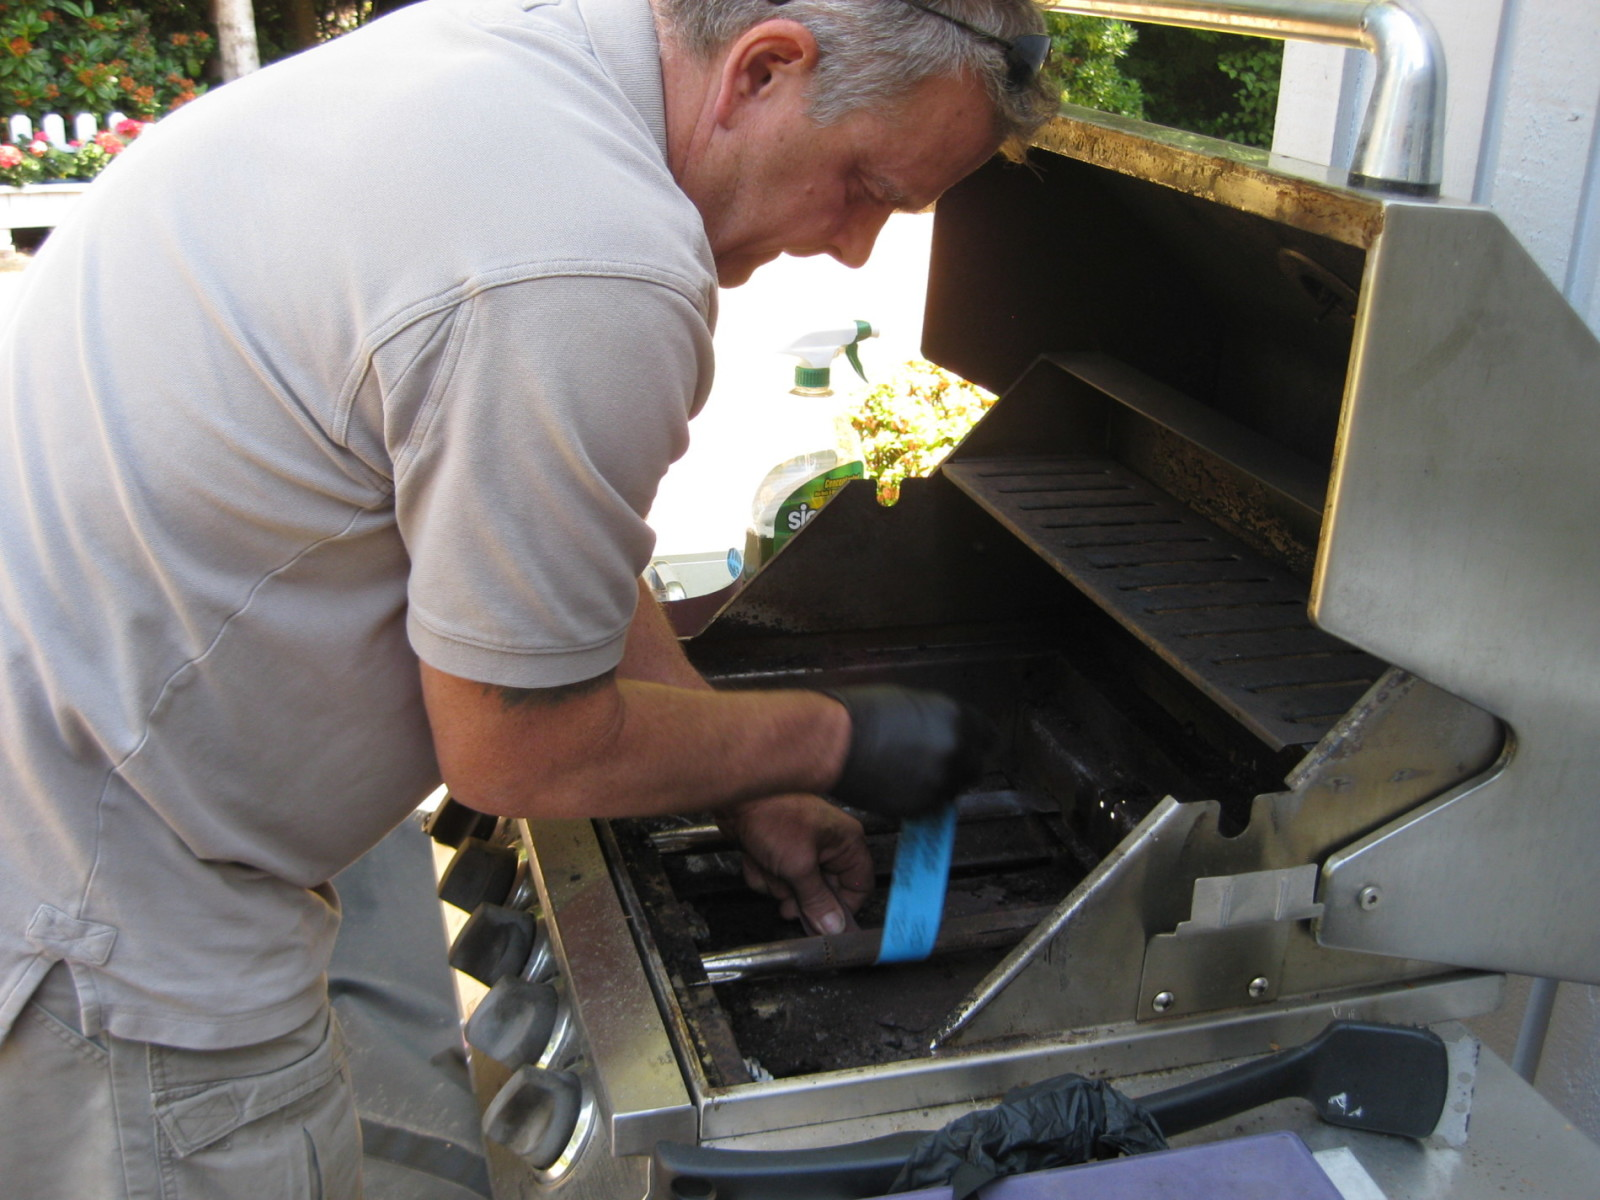 Repairing gas barbecue - B&C Comfort - Fireplace, HVAC, and barbecue